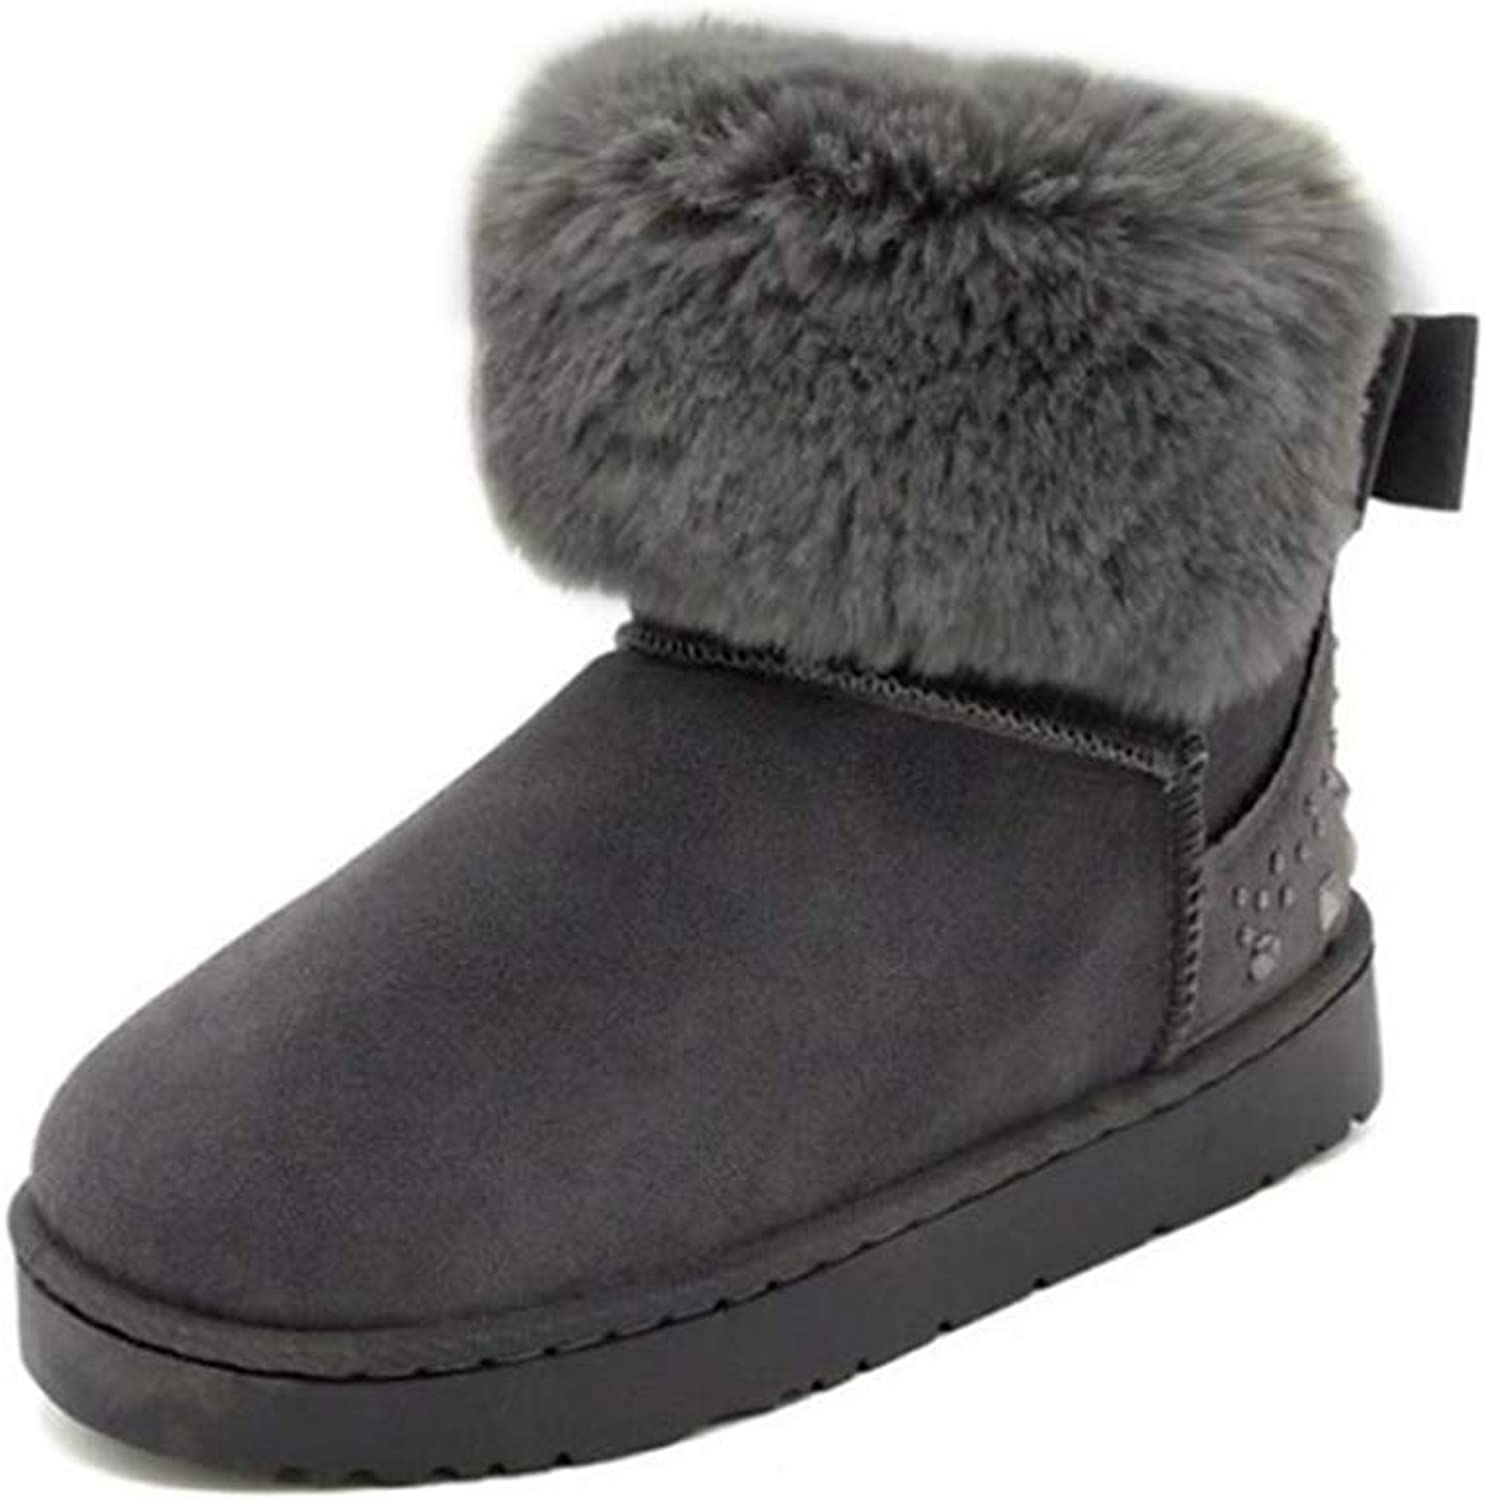 Fay Waters Women's Winter Snow Boots Fur Lined Bow with Diamonds Outdoor Cotton shoes Ankle Booties